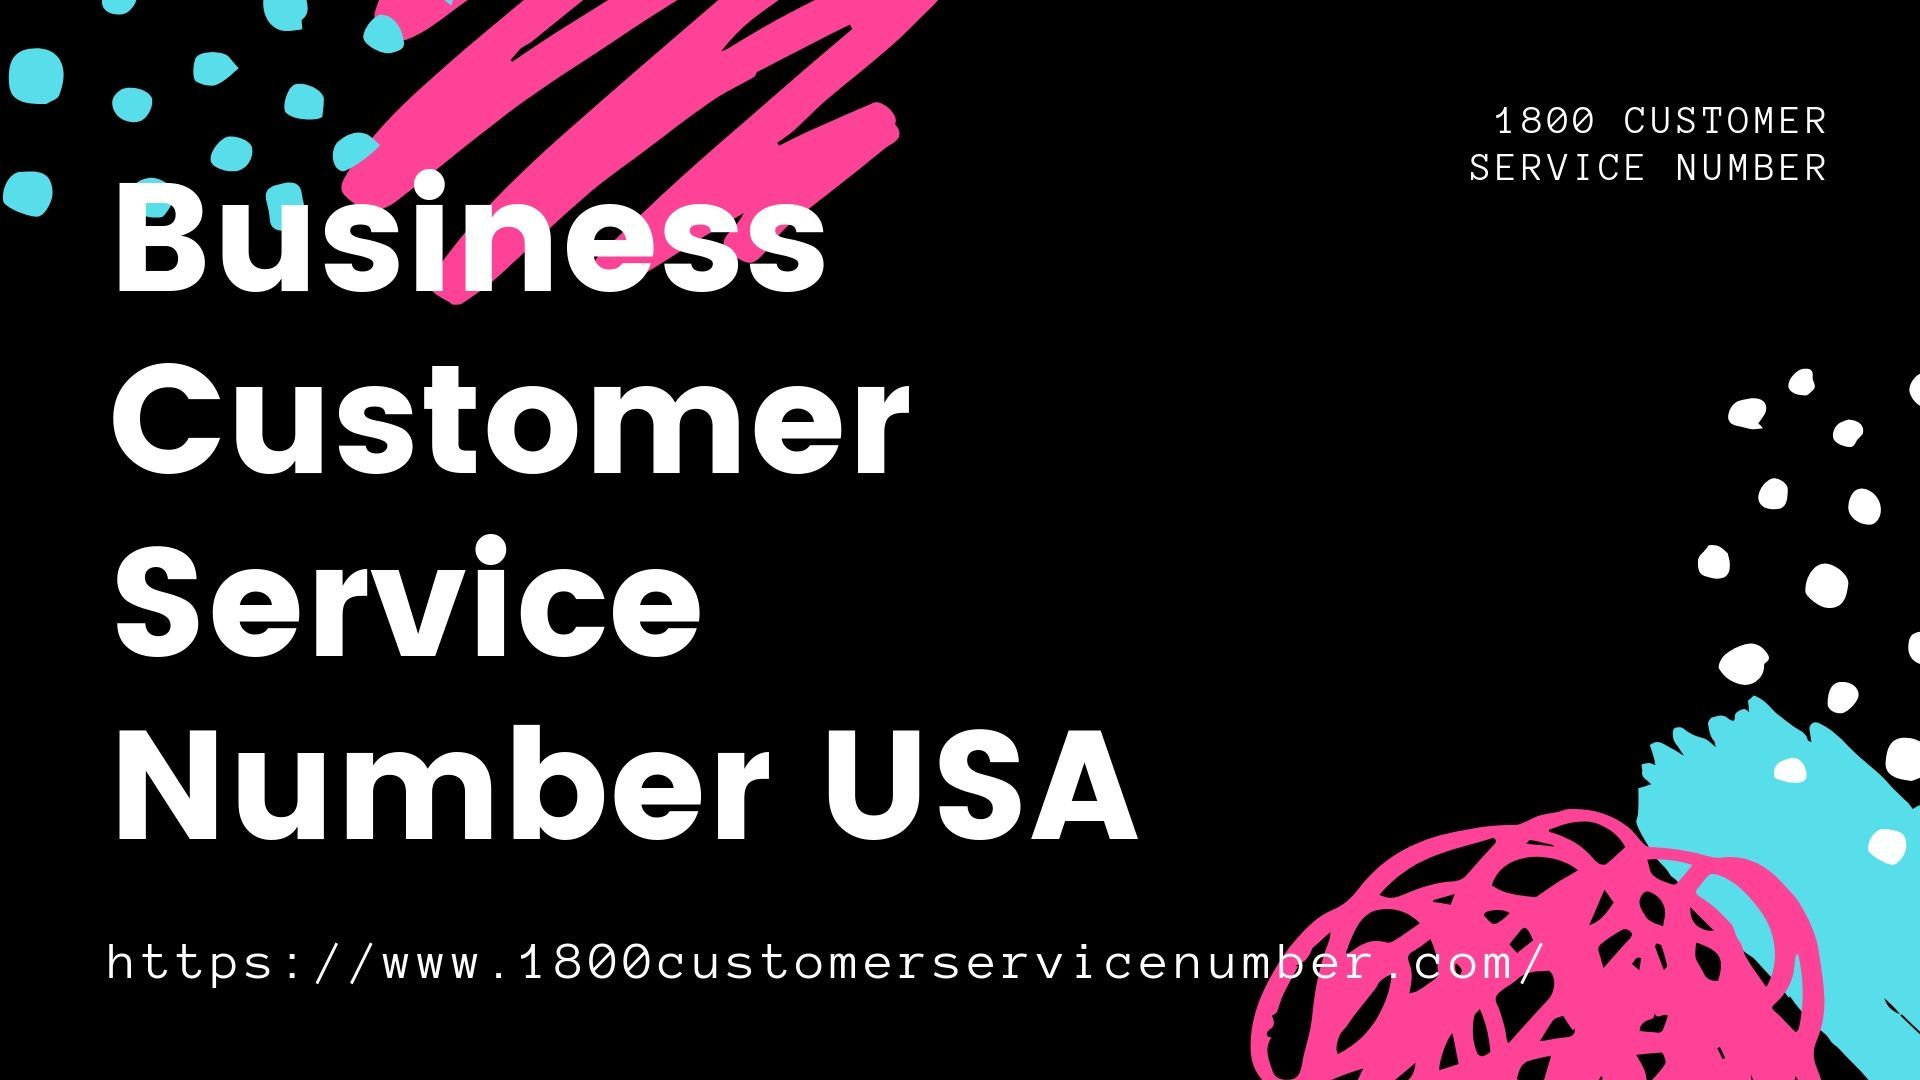 Business Customer Service Phone Number Business customer